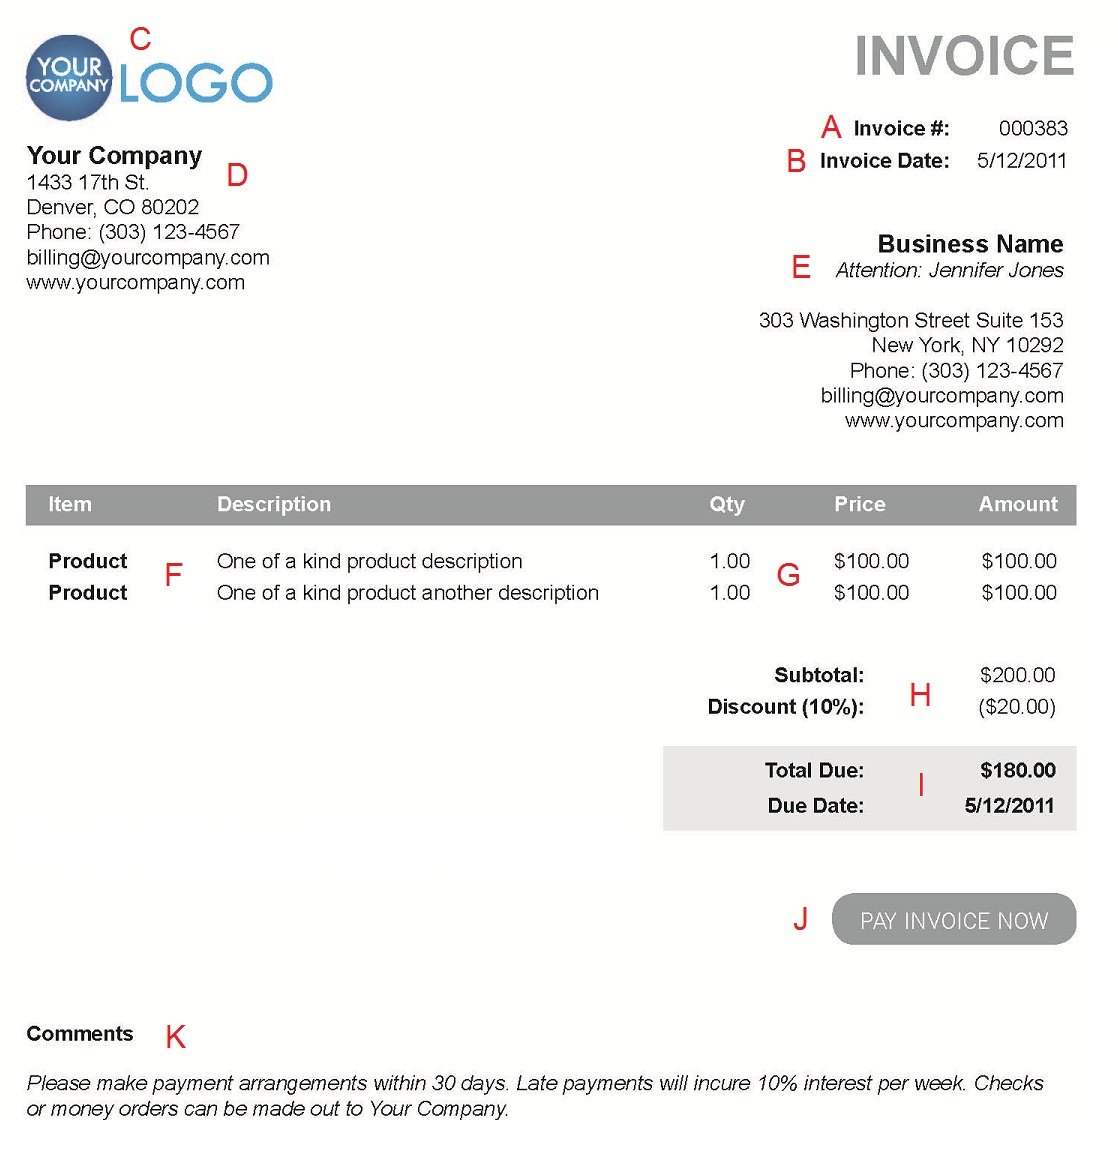 Centralasianshepherdus  Terrific The  Different Sections Of An Electronic Payment Invoice With Heavenly A  With Amazing Letter Requesting Payment Of Invoice Also Tax Invoice Sample In Addition Performa Invoice Or Proforma Invoice And Invoicing For Mac As Well As Carcostcanada Wholesale Invoice Price Report Additionally Invoice Number Sample From Paysimplecom With Centralasianshepherdus  Heavenly The  Different Sections Of An Electronic Payment Invoice With Amazing A  And Terrific Letter Requesting Payment Of Invoice Also Tax Invoice Sample In Addition Performa Invoice Or Proforma Invoice From Paysimplecom